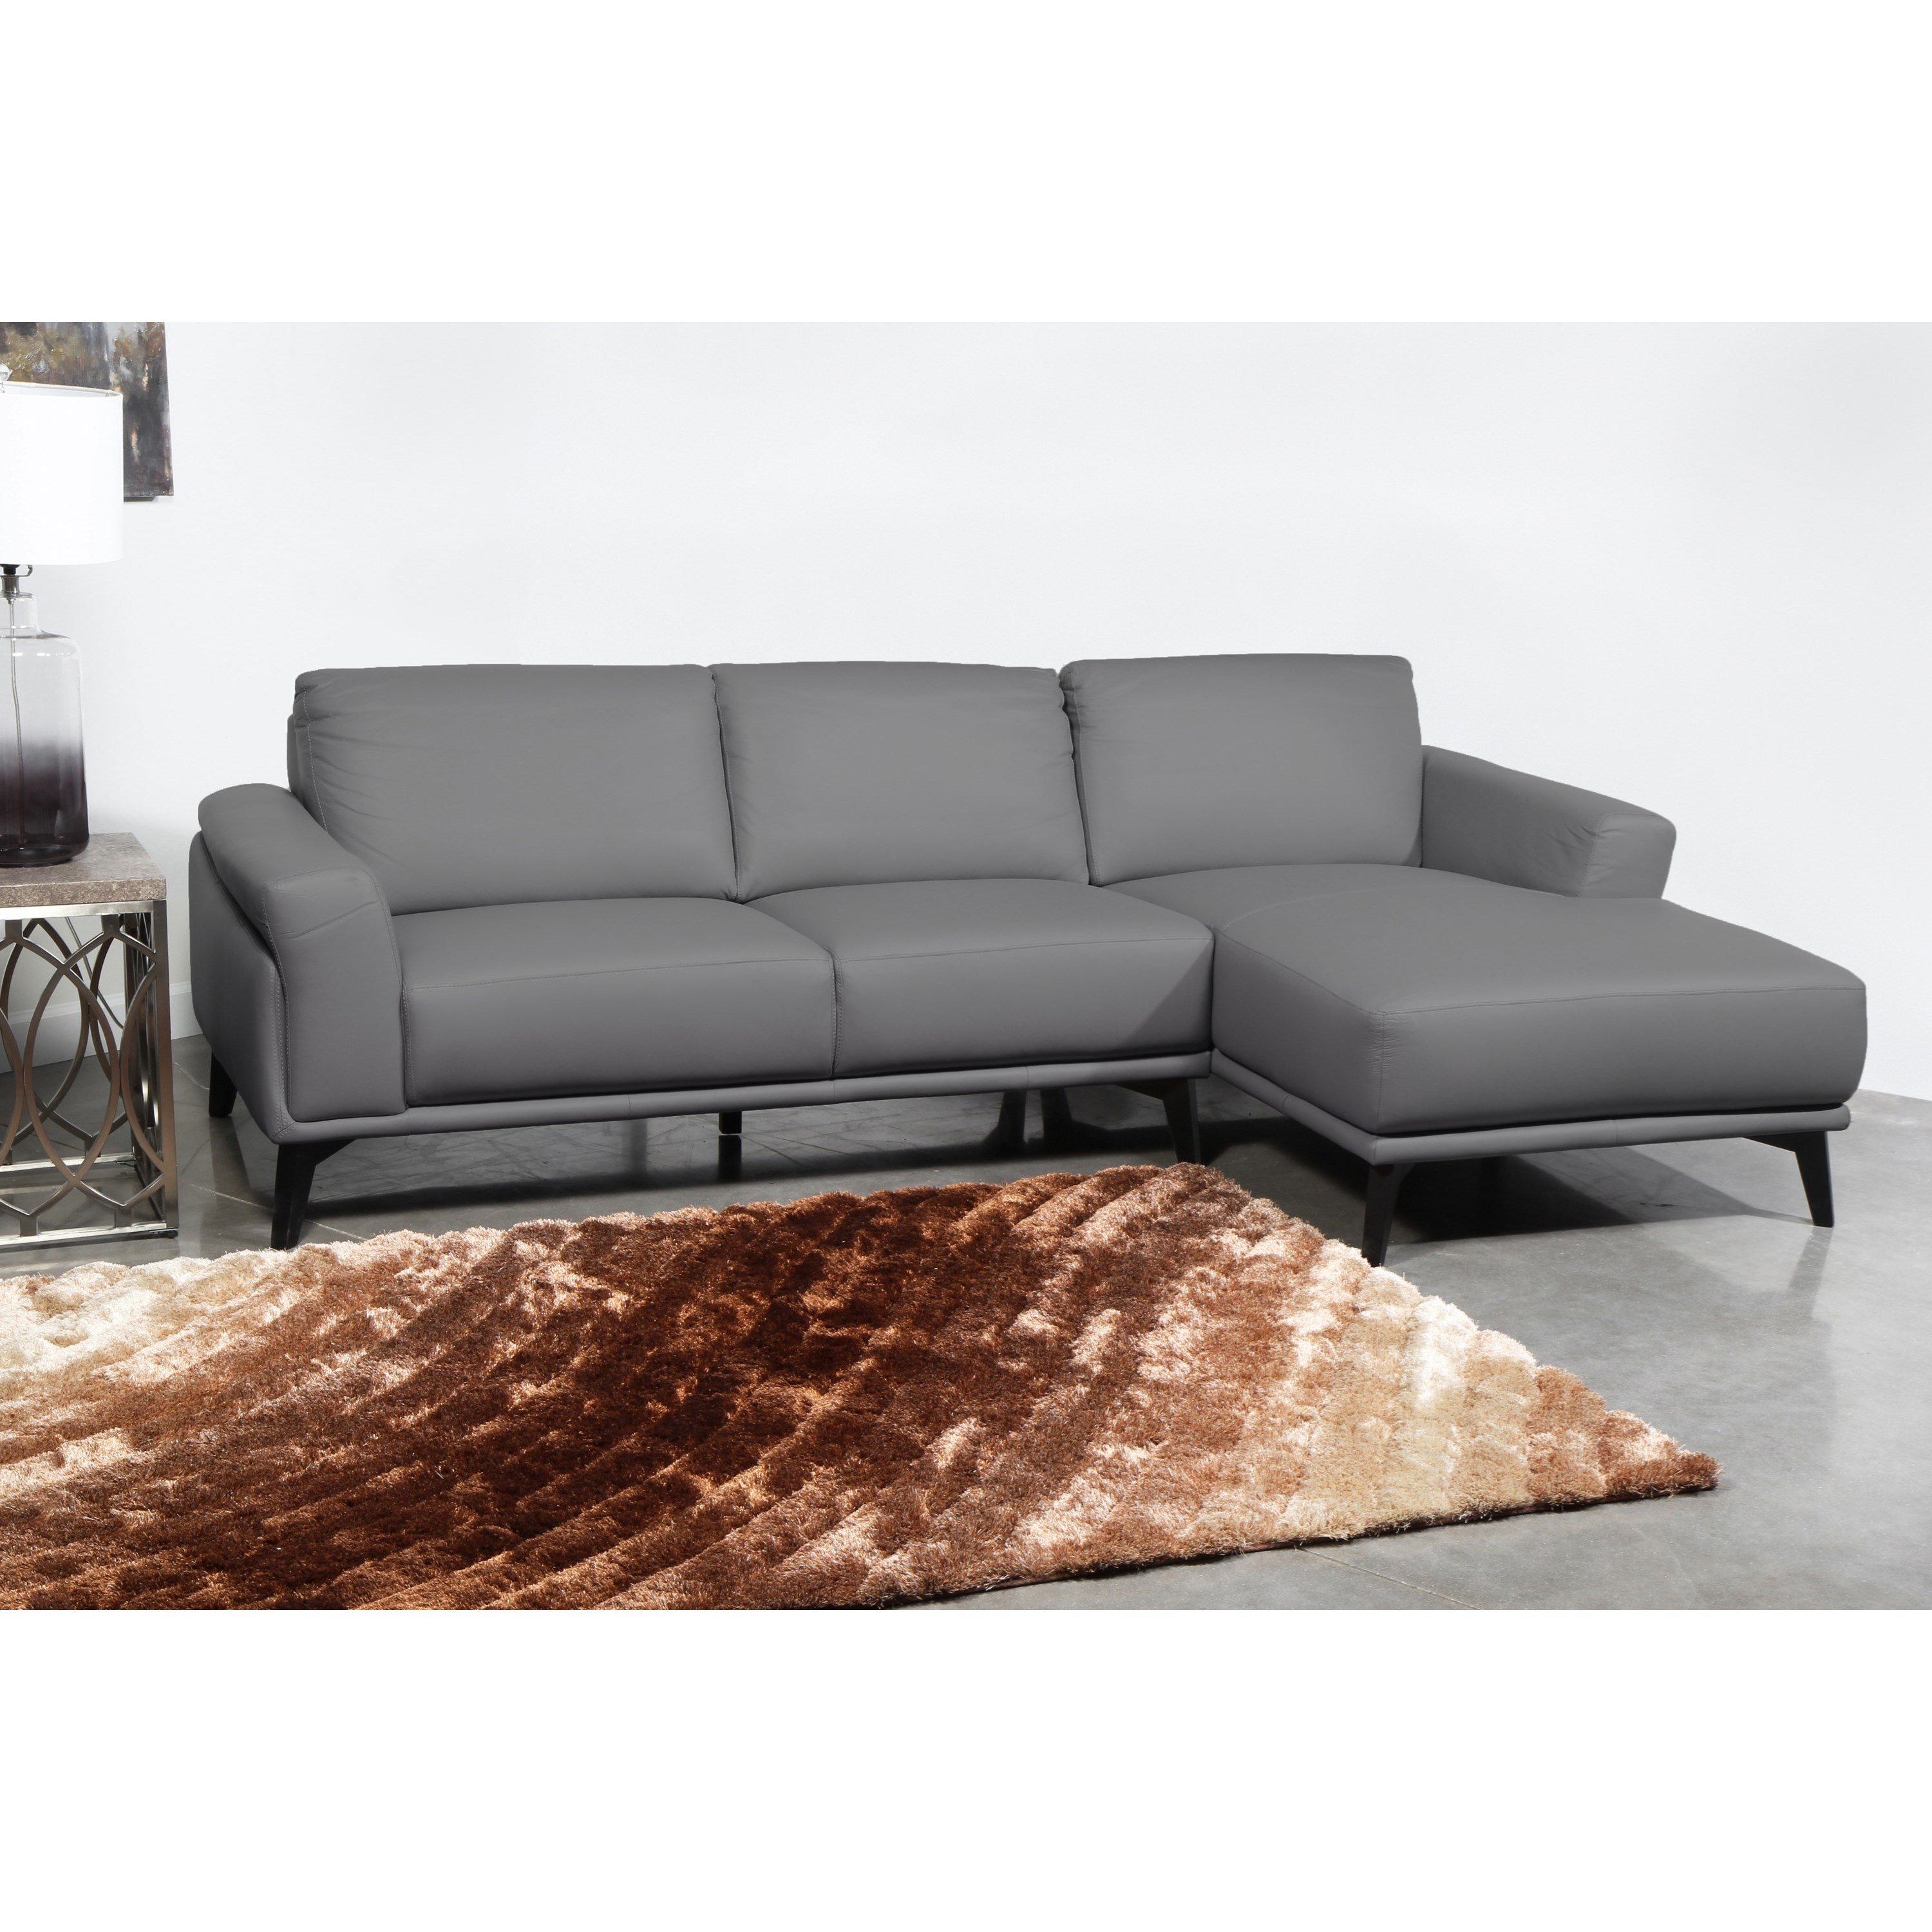 Lucca 100% Leather 3 Seat Chaise Sectional by New Classic at Wilcox Furniture